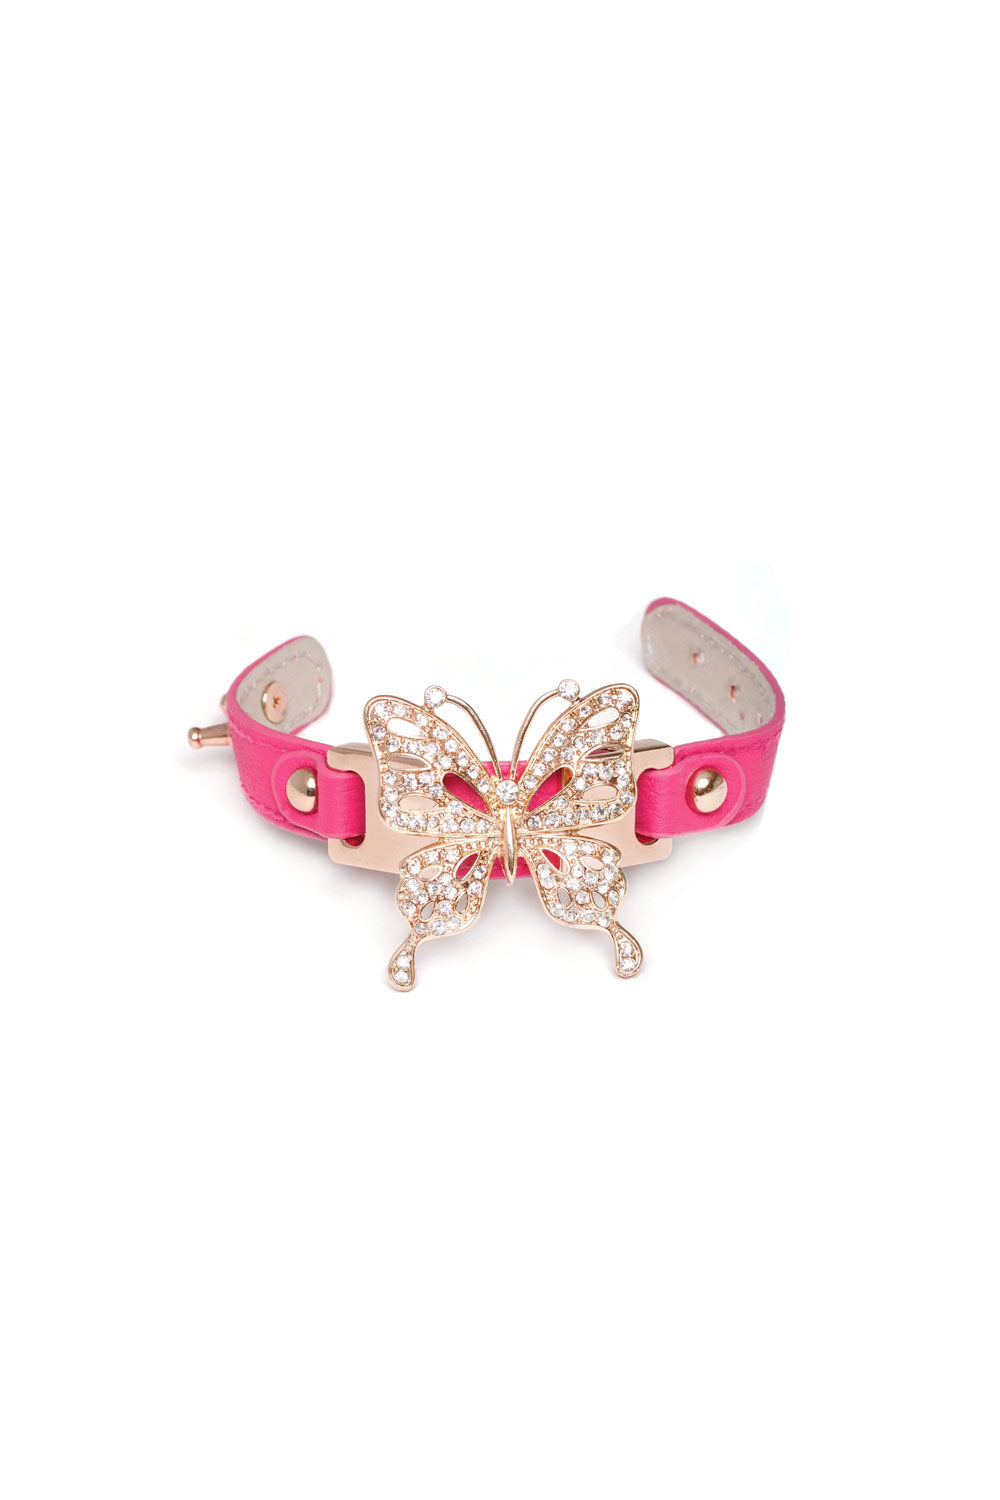 Type 1 Butterfly Bling Bracelet